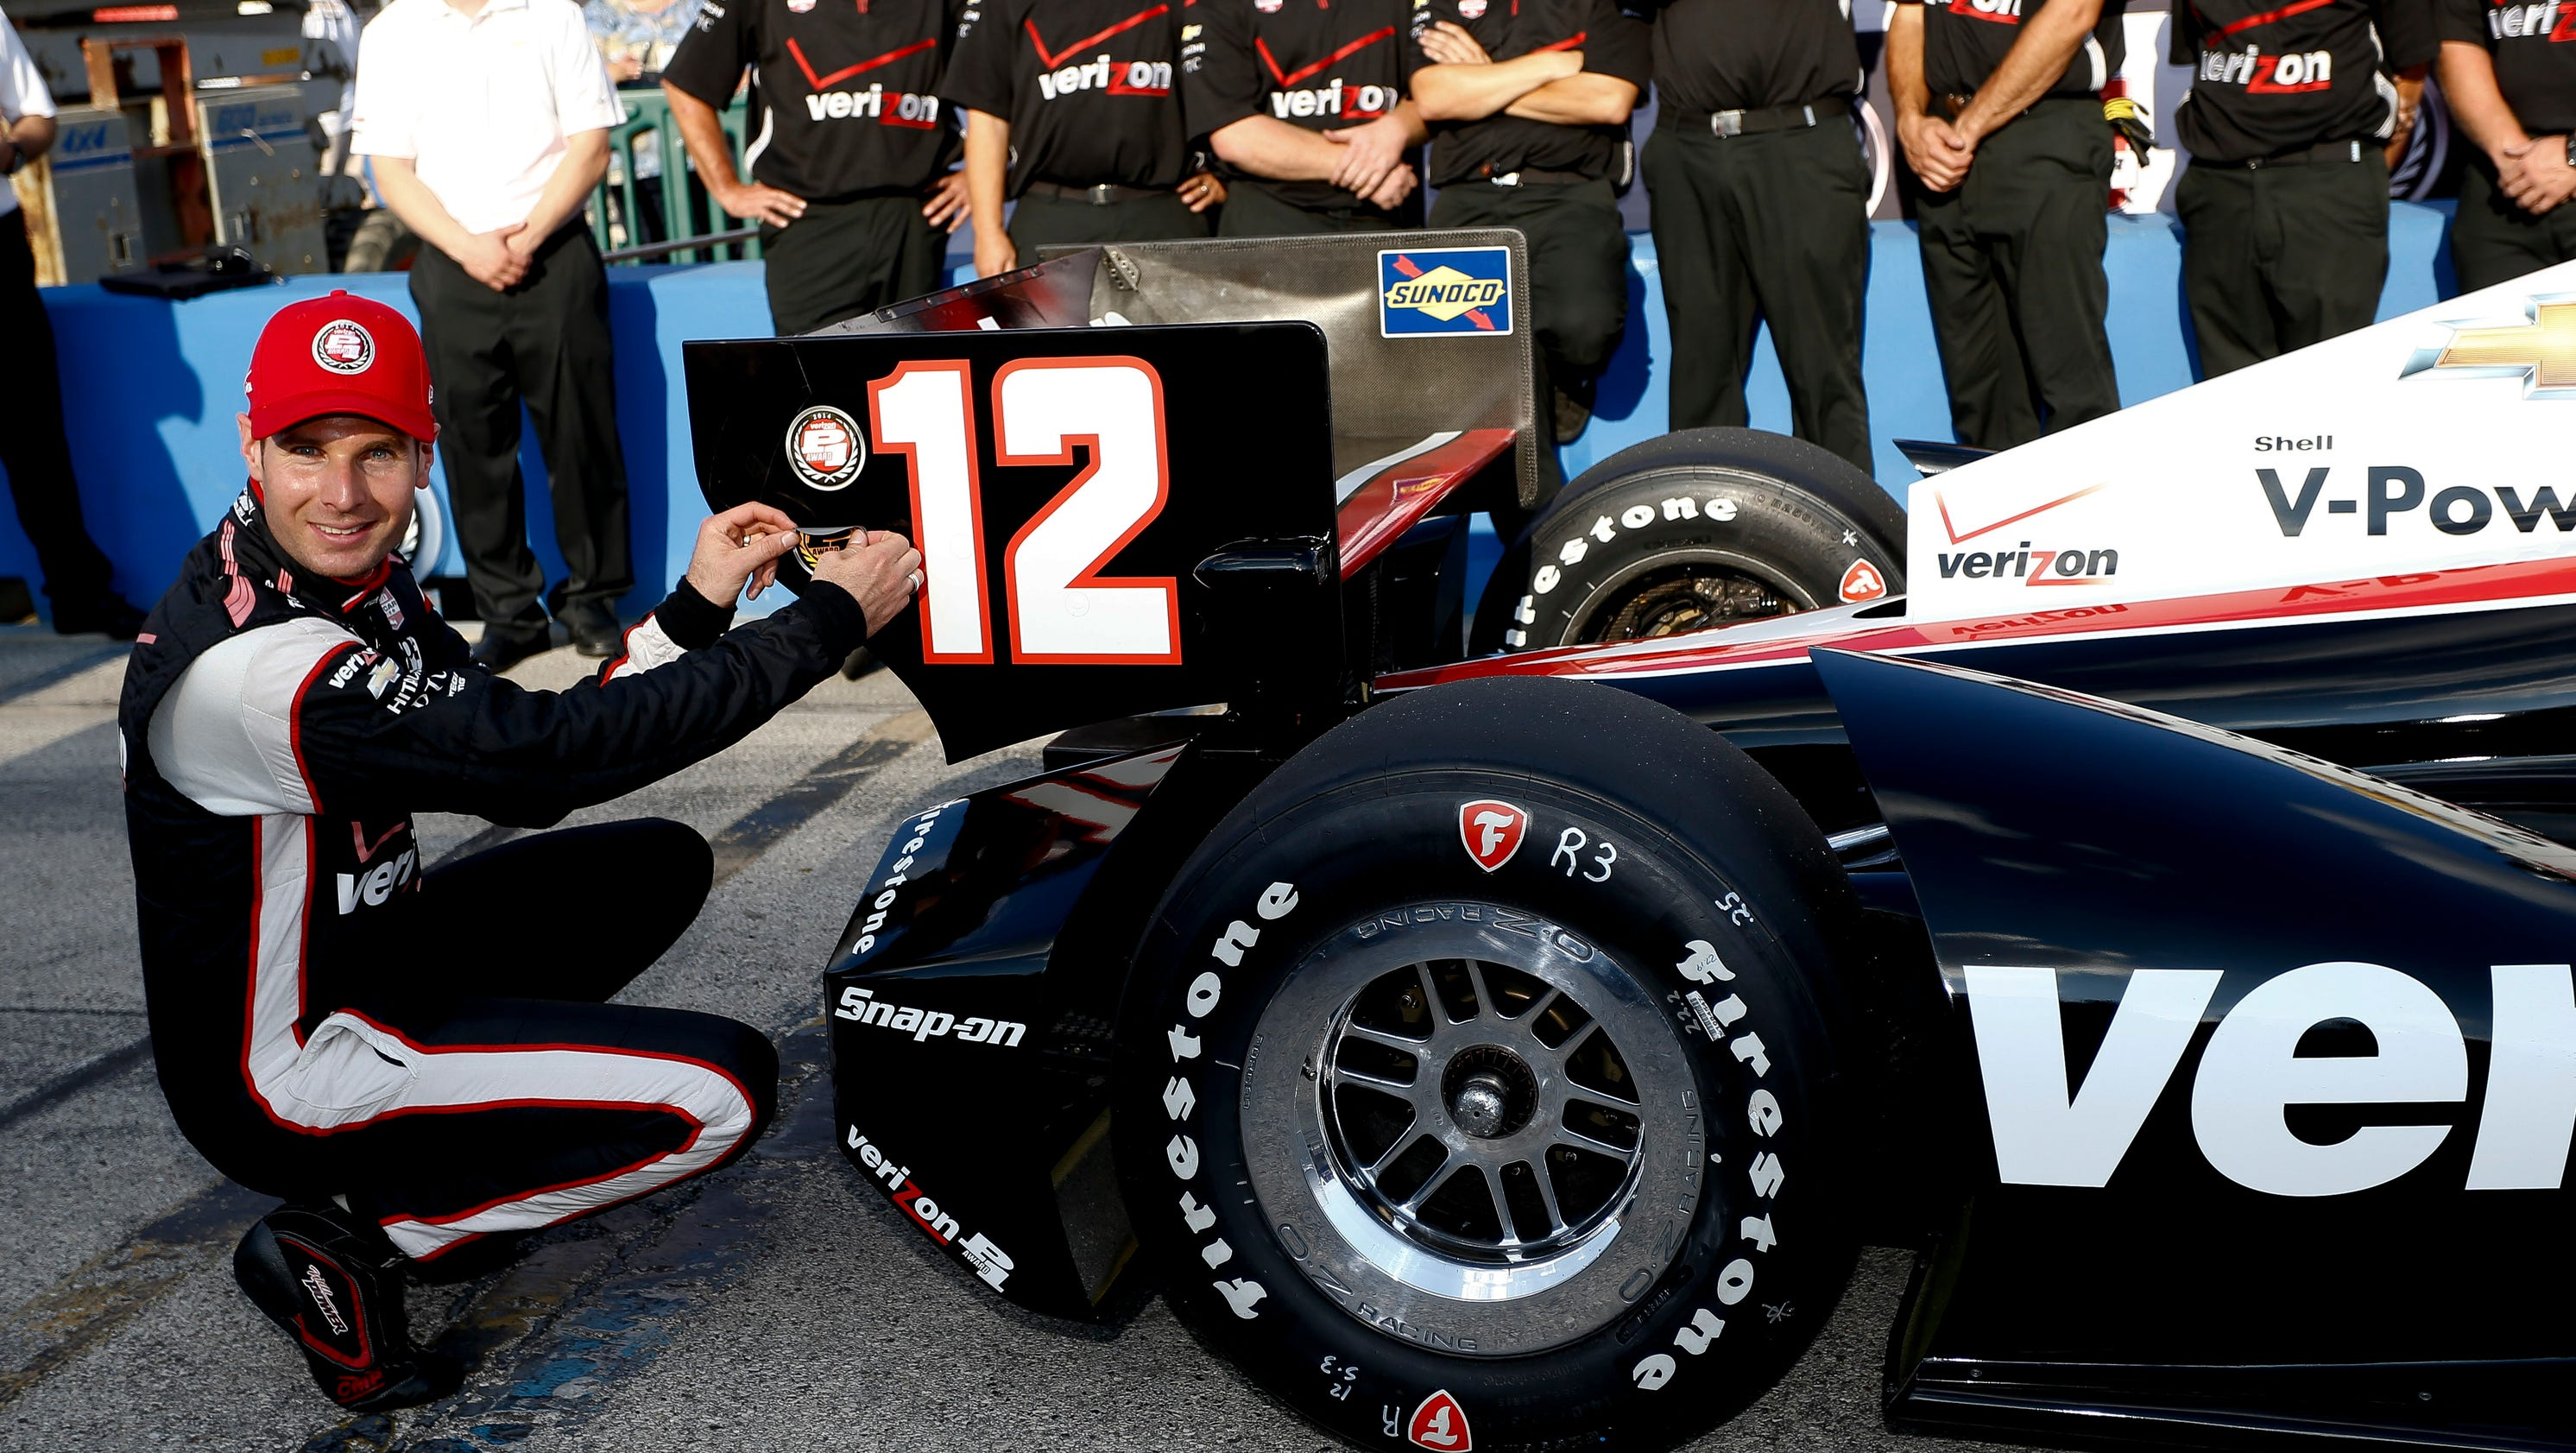 Indycar points leader will power wins from the pole at for Motor city pawn shop on east 8 mile